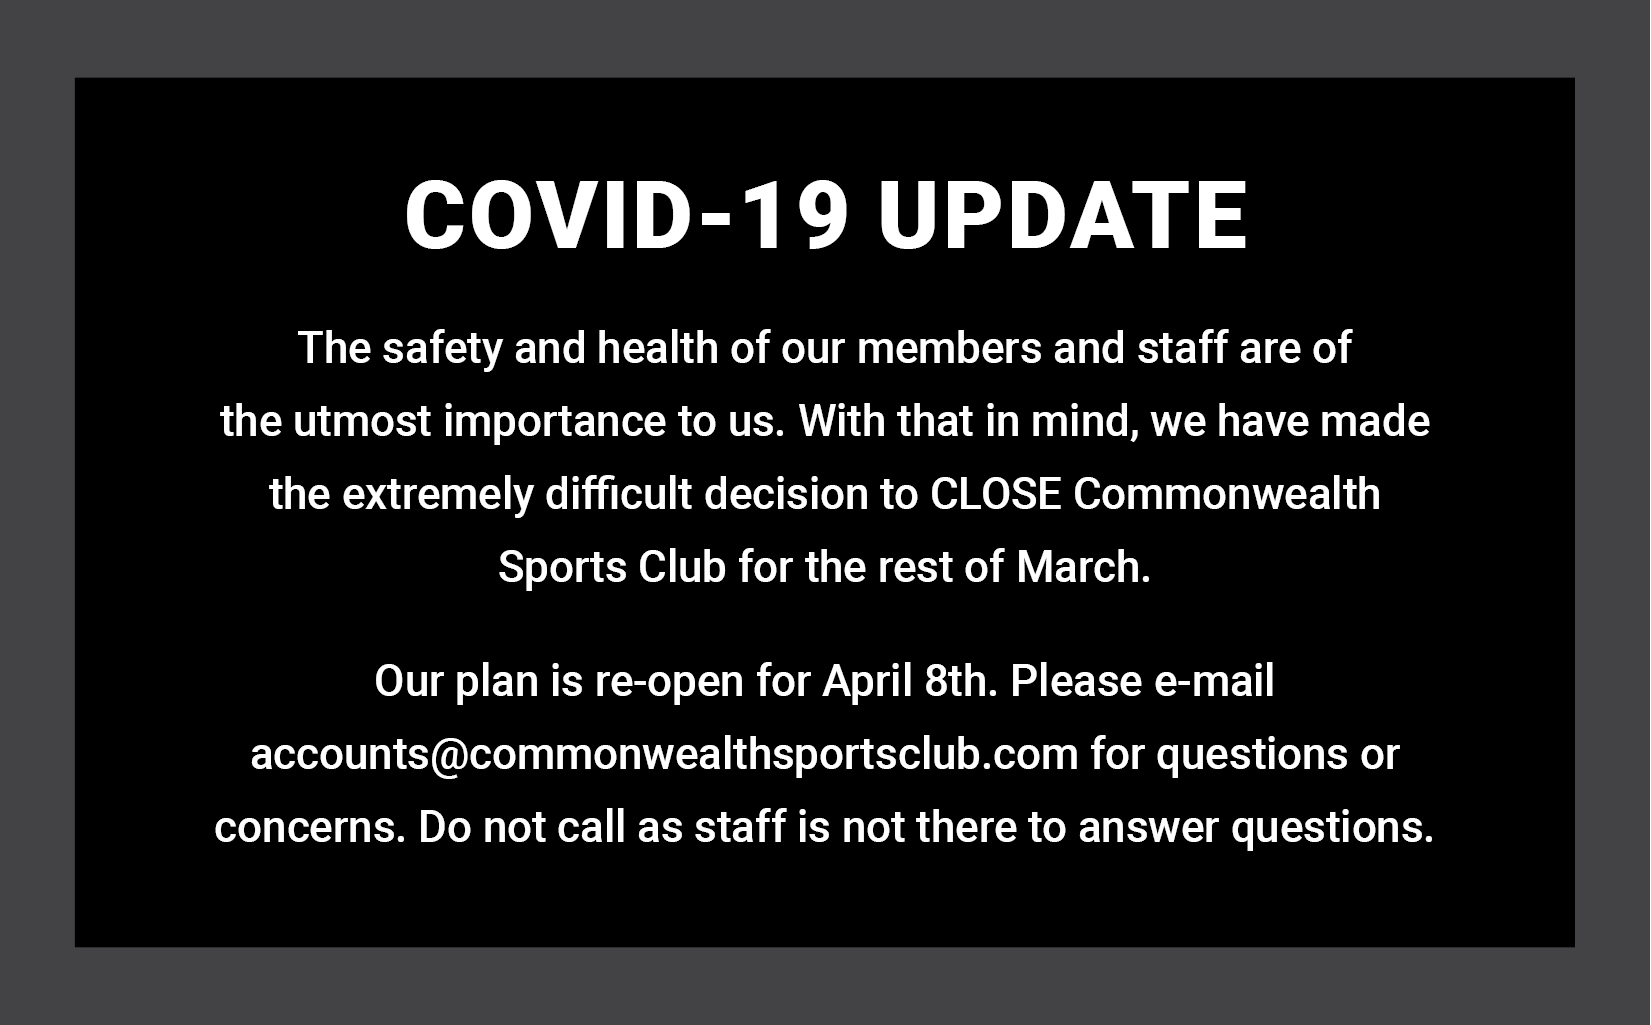 COVID-19 update: CSC is closed until April 7th. We will reopen on April 8th.